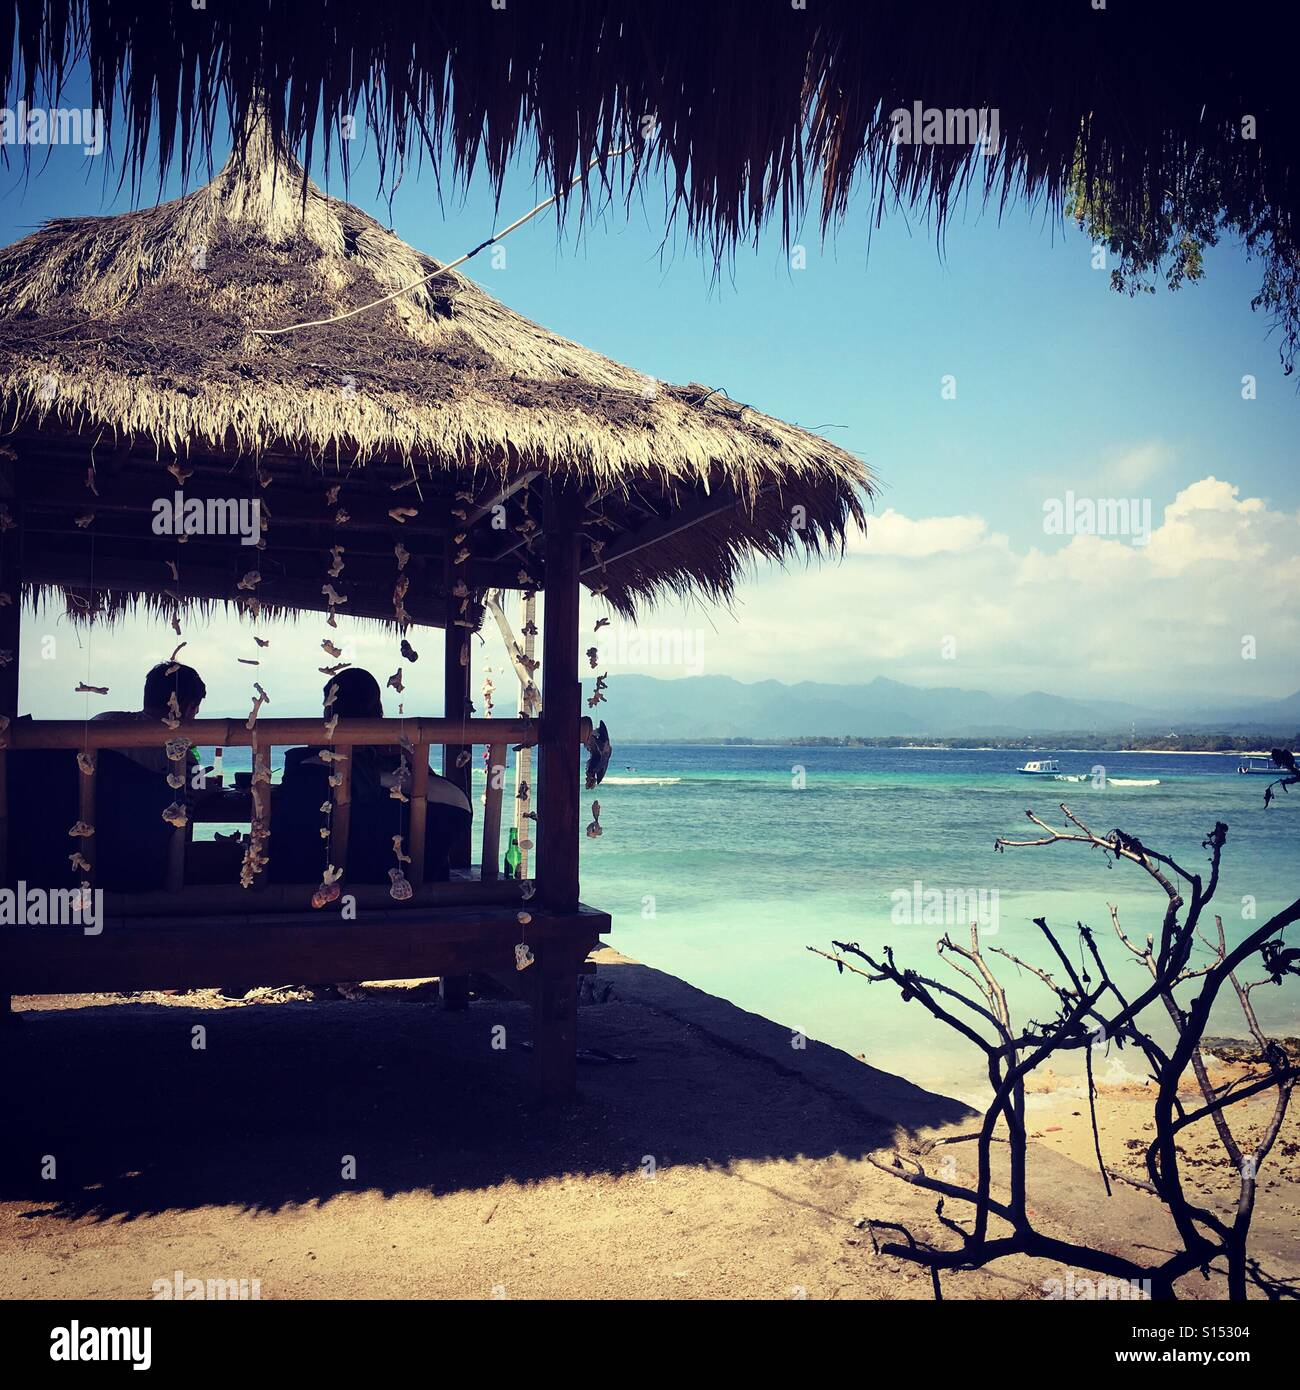 Gili Air beach - Stock Image